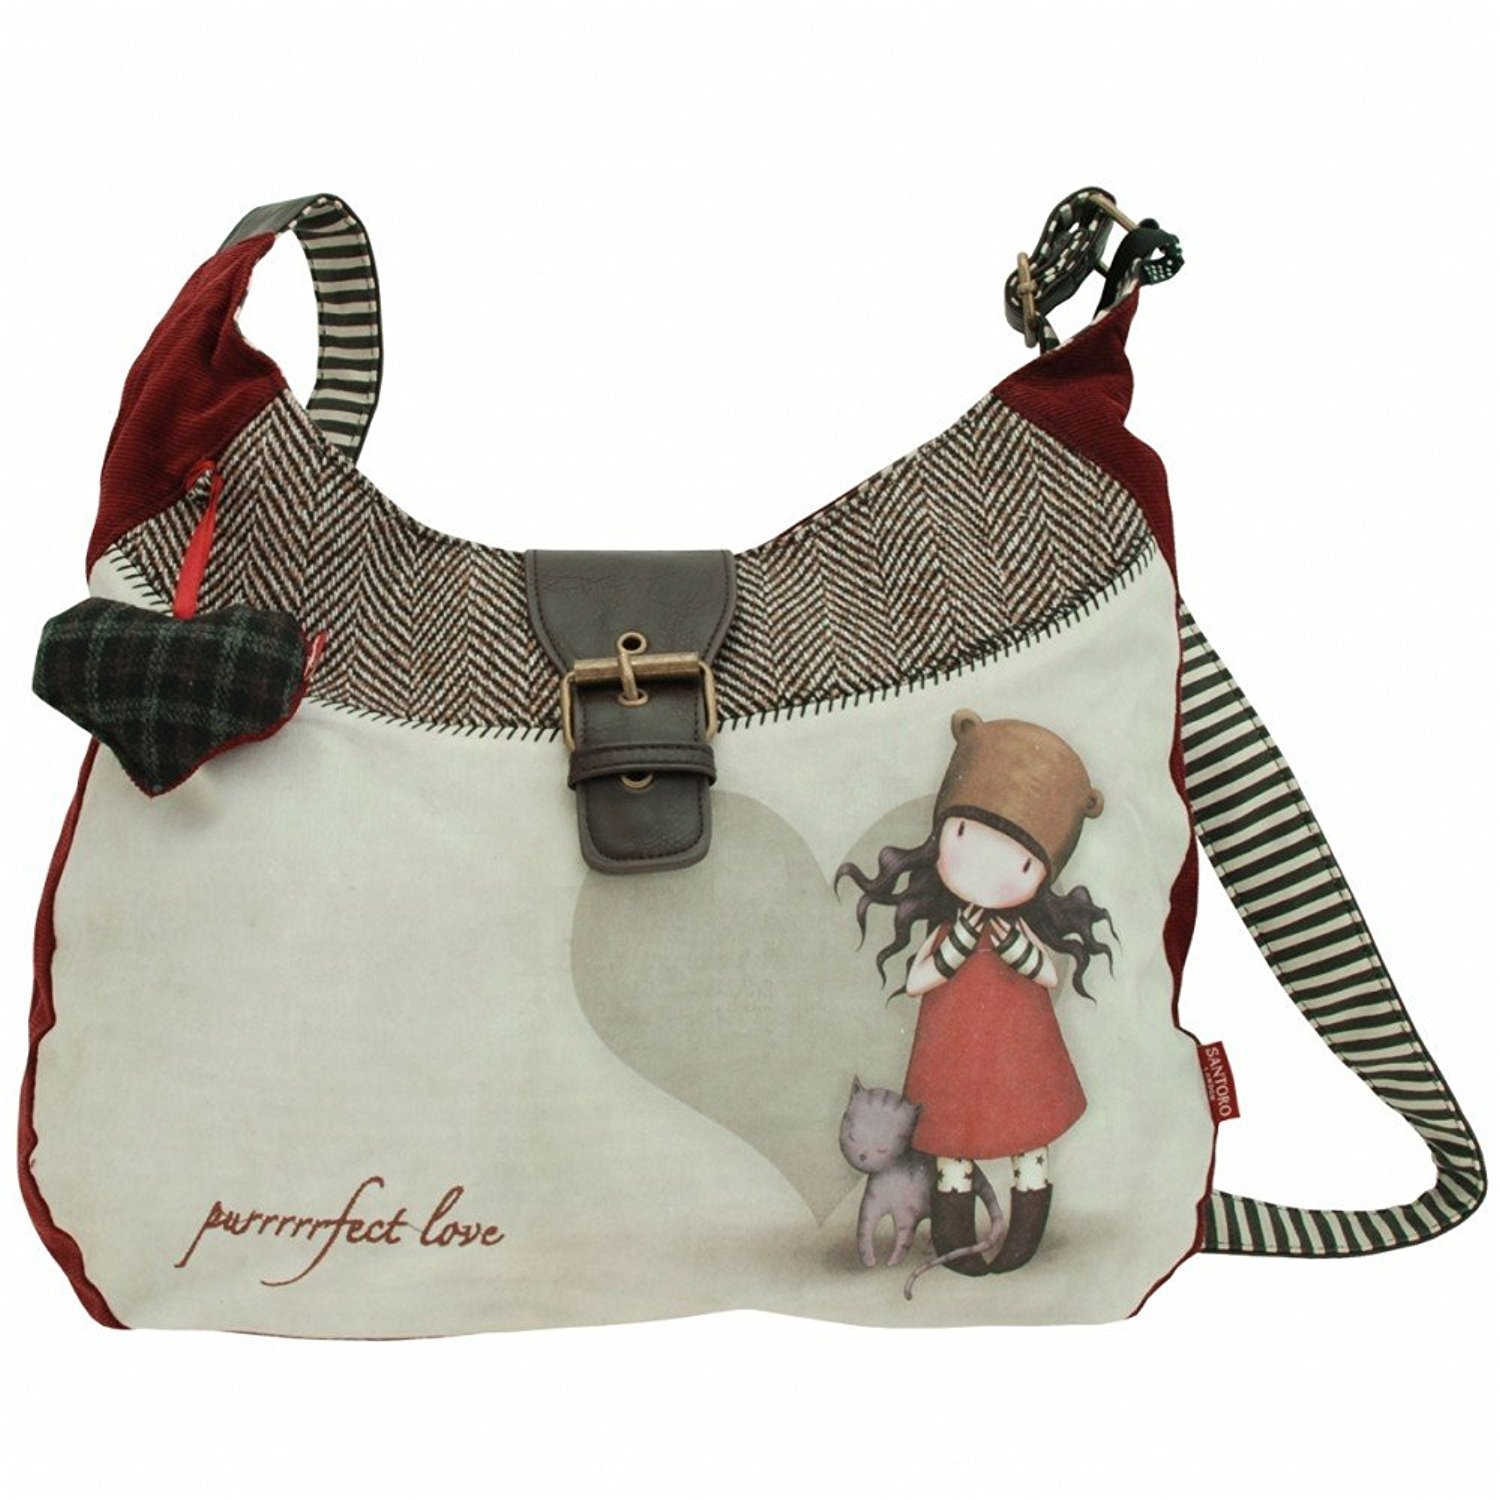 Amazon.com: Santoro London Gorjuss Slouchy Bag Purrrrrfect Love Perfect Handbag Crossbody: Clothing